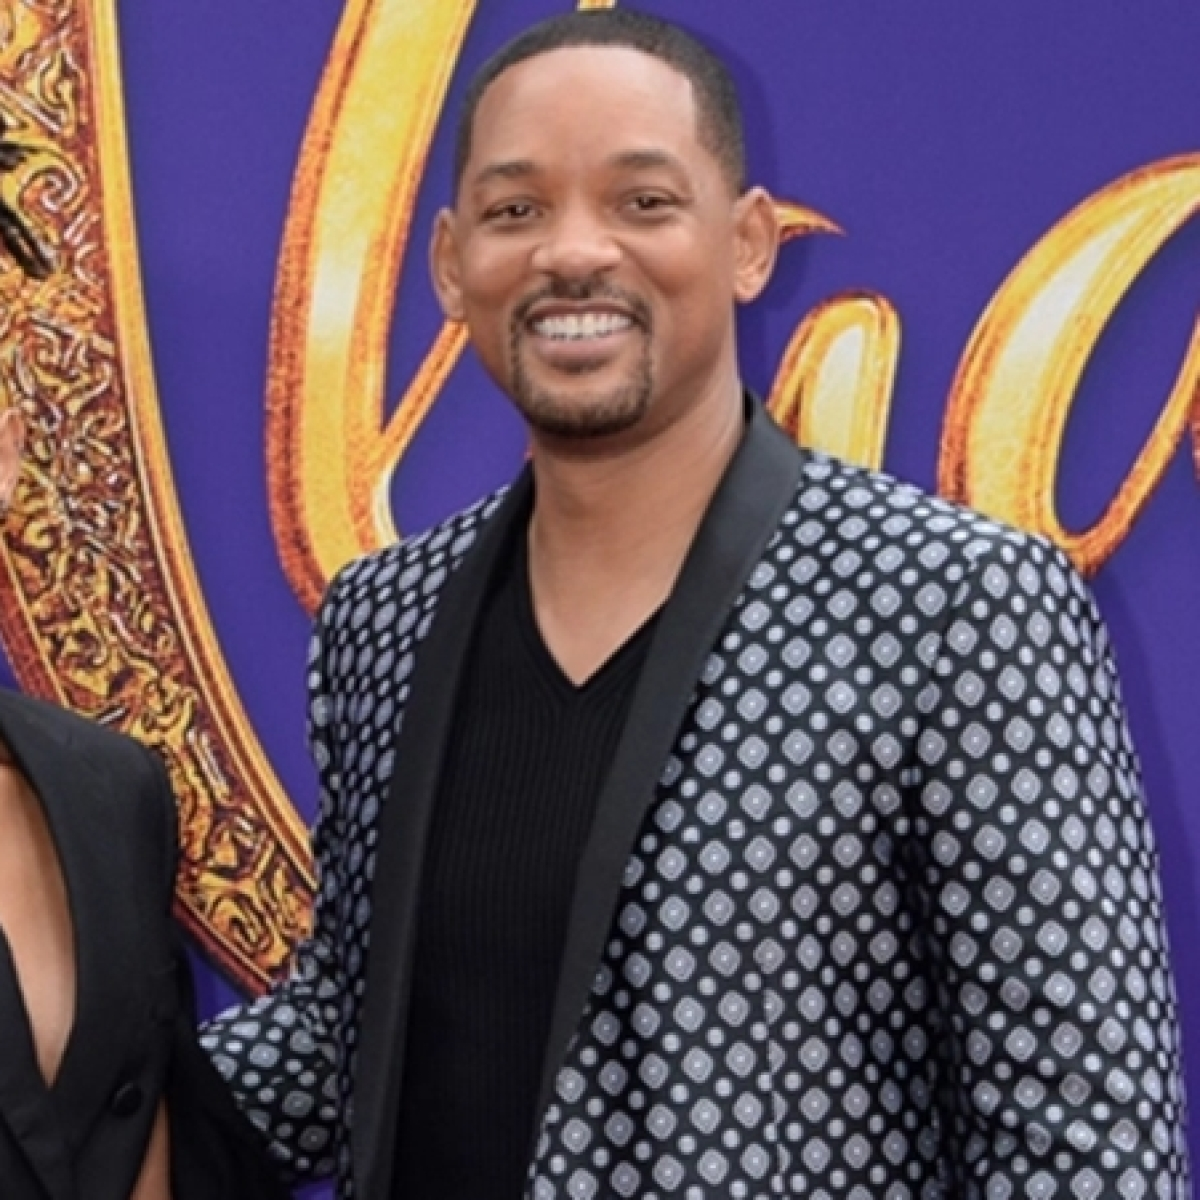 Will Smith's wife reveals actor made 'insensitive' comments about daughter's periods